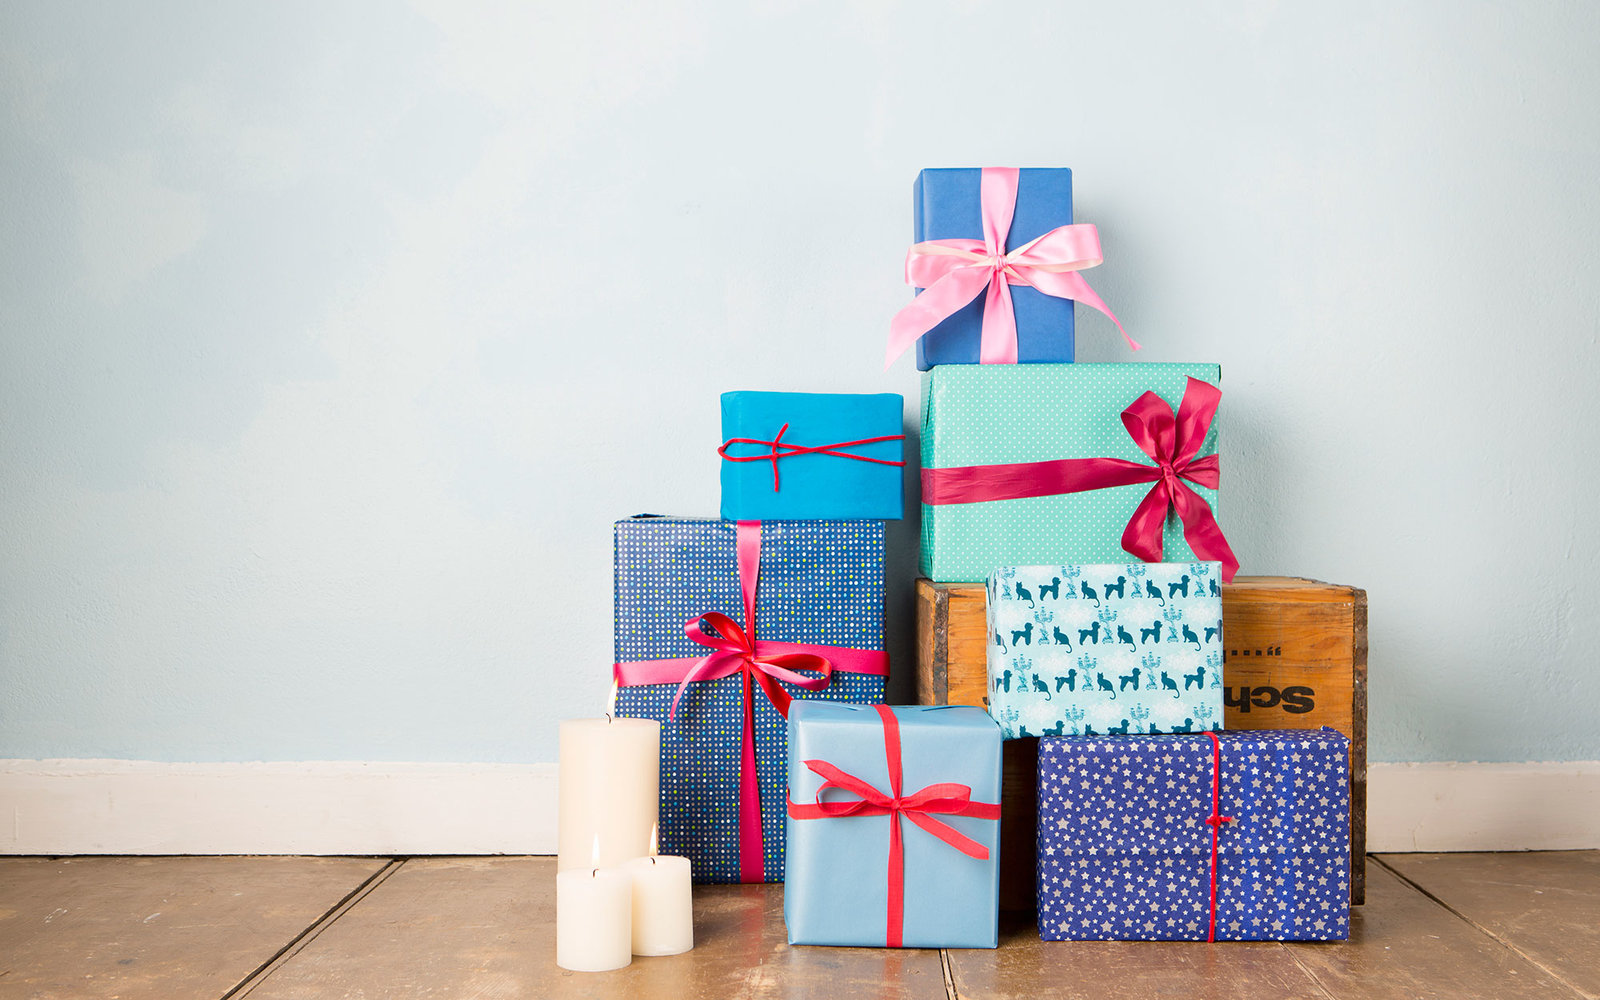 Giving Personalized Gifts to Your Loved Ones